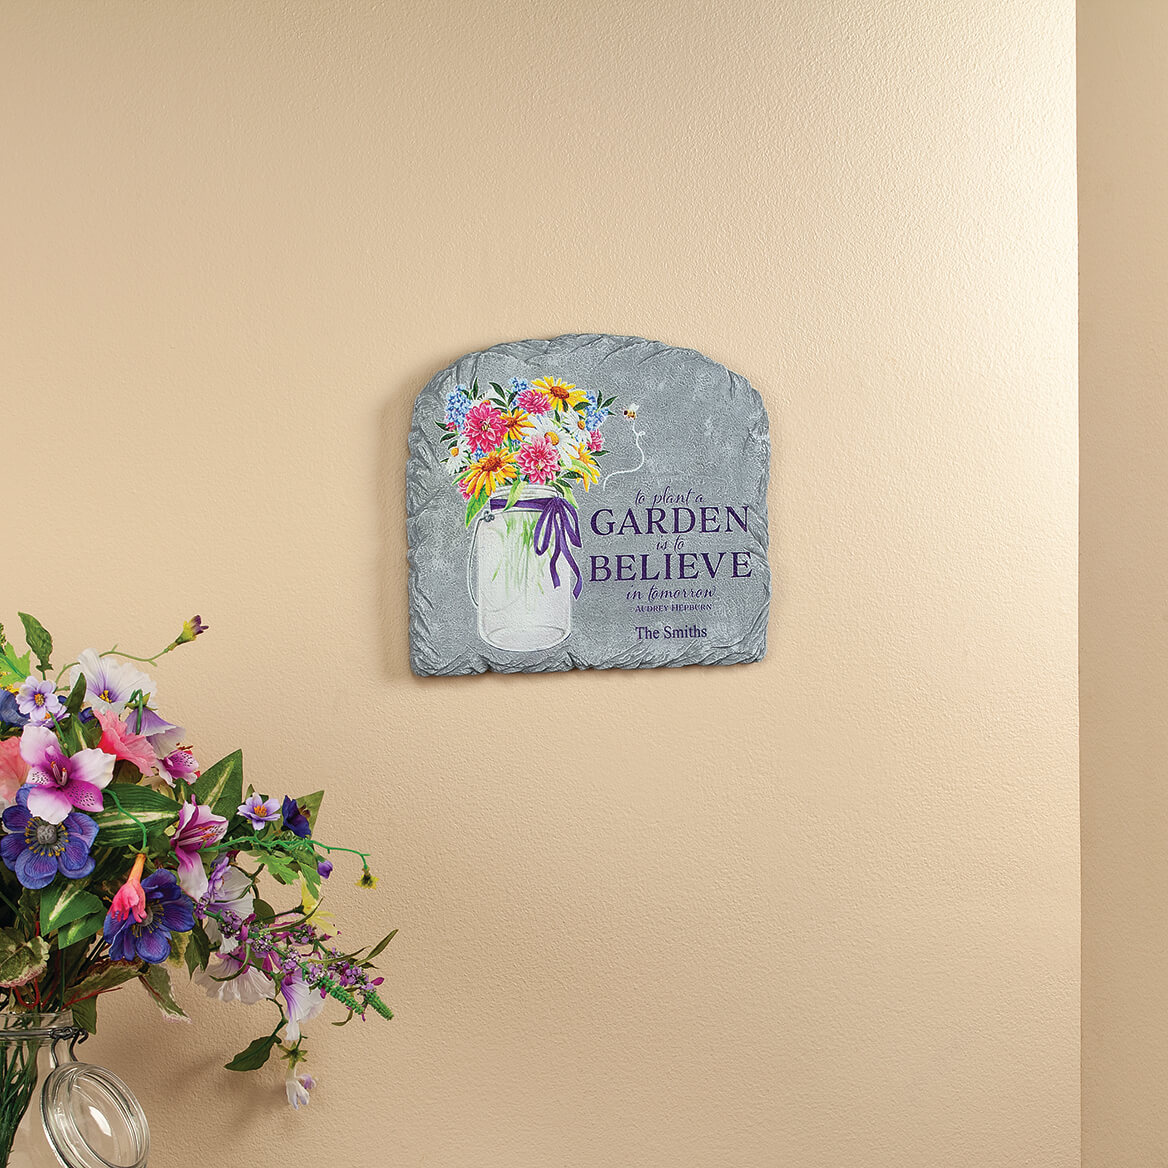 Personalized To Plant A Garden Stone-371656